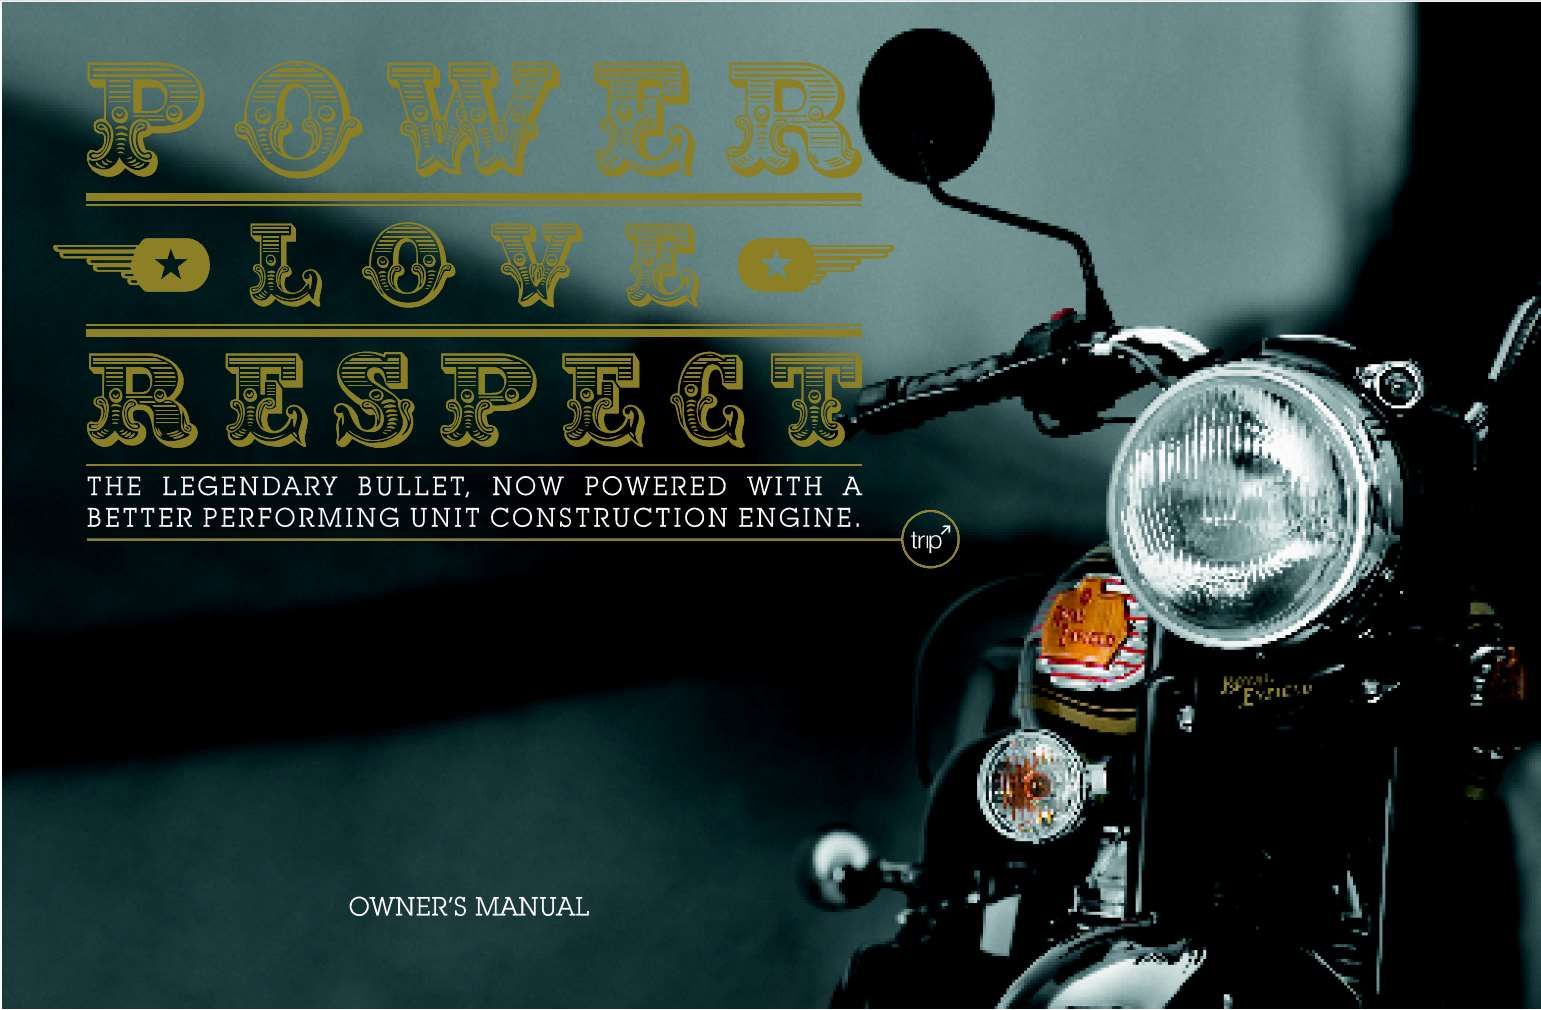 Royal Enfield Bullet 350 Twinspark 2006 Owner S Manual Has Been Published On Procarmanuals Com Https Procar Royal Enfield Enfield Bullet Royal Enfield Bullet